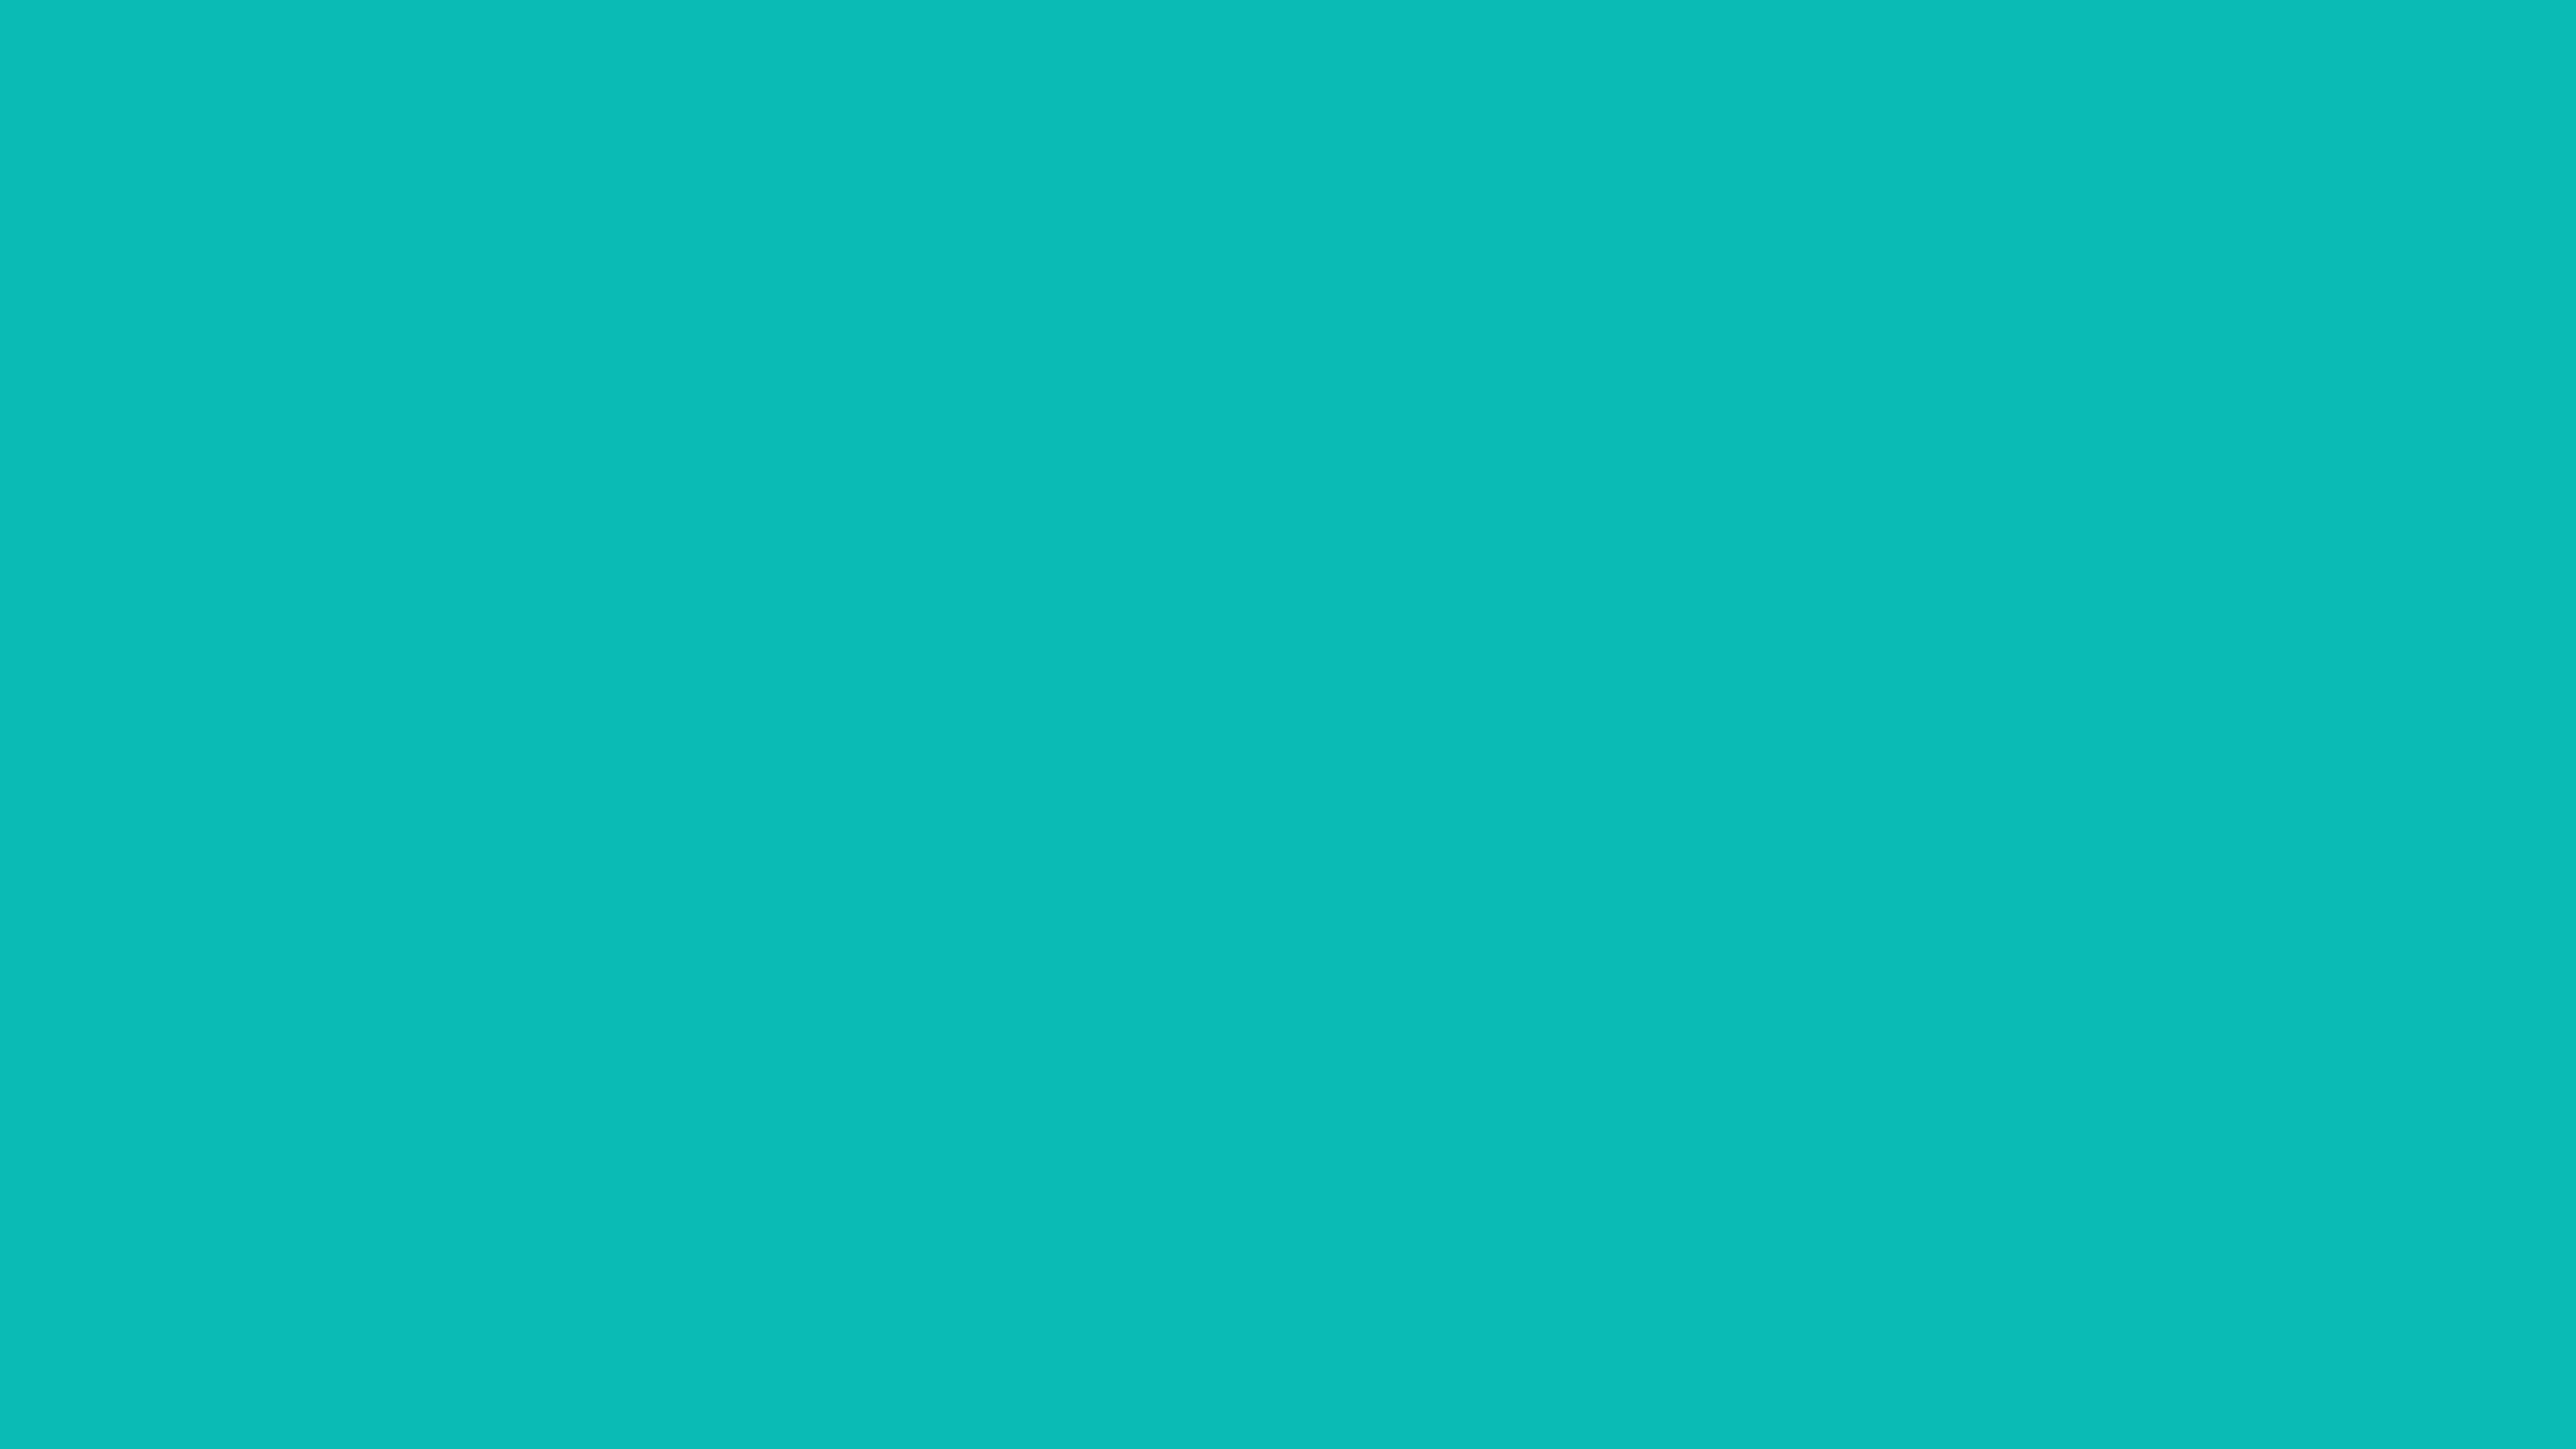 4096x2304 Tiffany Blue Solid Color Background